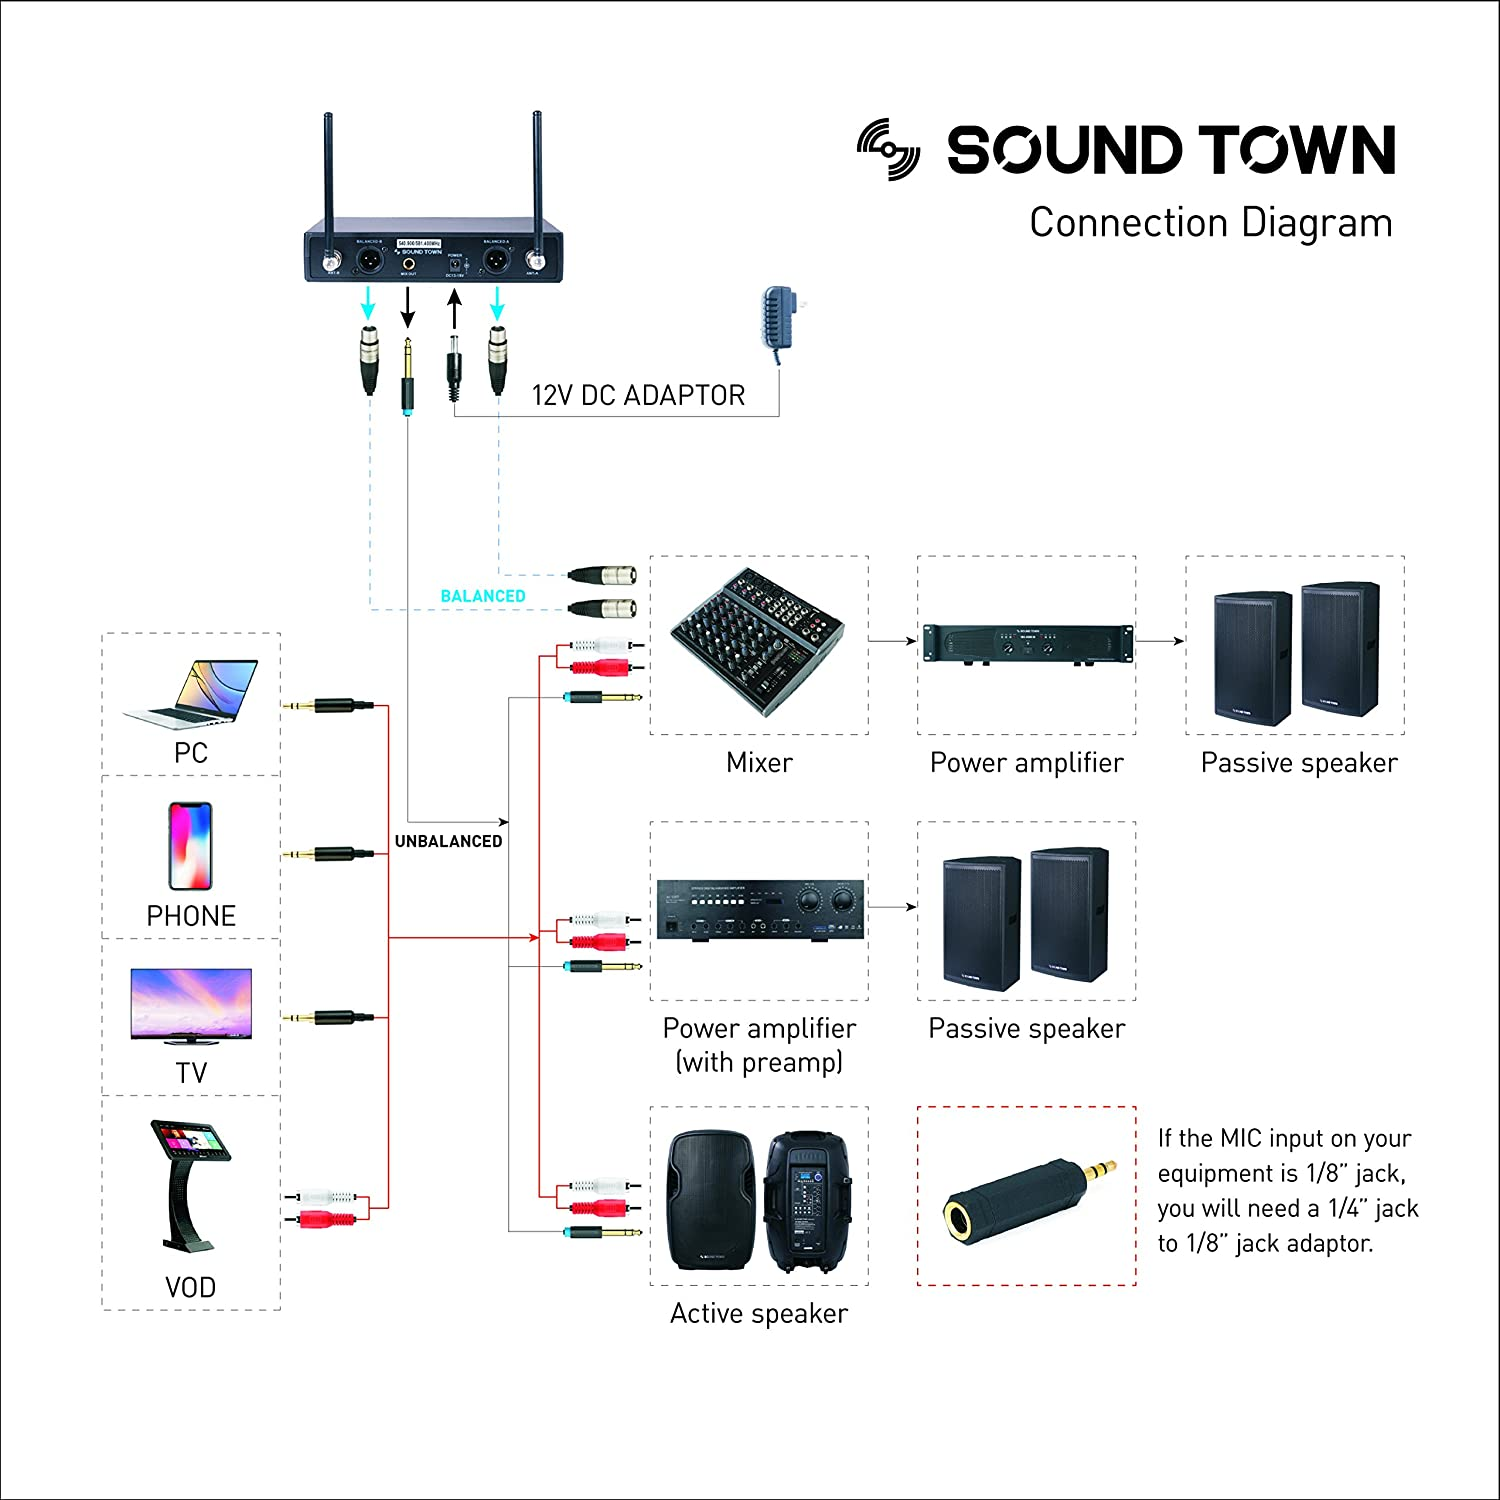 Sound Town 200 Channel Professional Uhf Wireless Home Speaker System Wiring Diagram Audio Darren Microphone With 2 Handheld Mics For Church Business Meeting Outdoor Wedding And